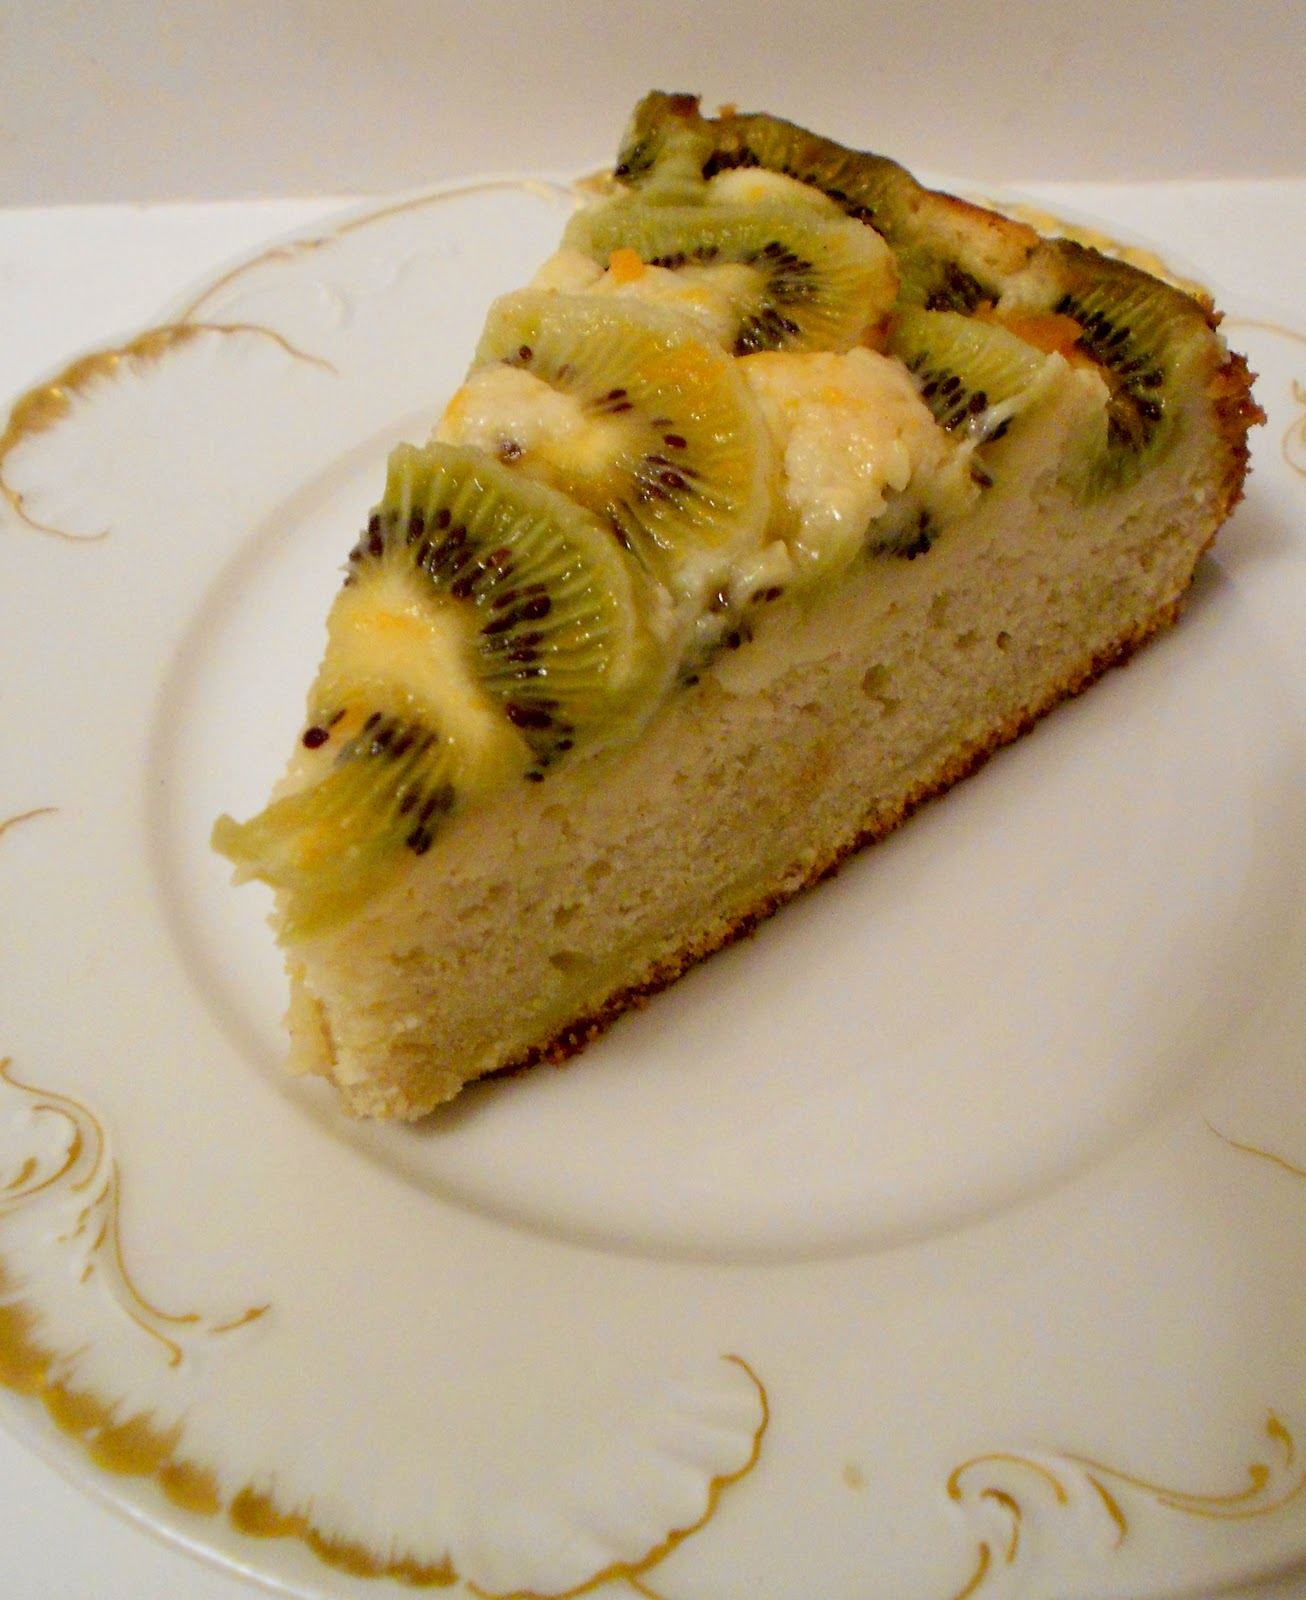 ... *: Delicious! Baking with California Grown Kiwi~Kiwi Tea Cake Recipe